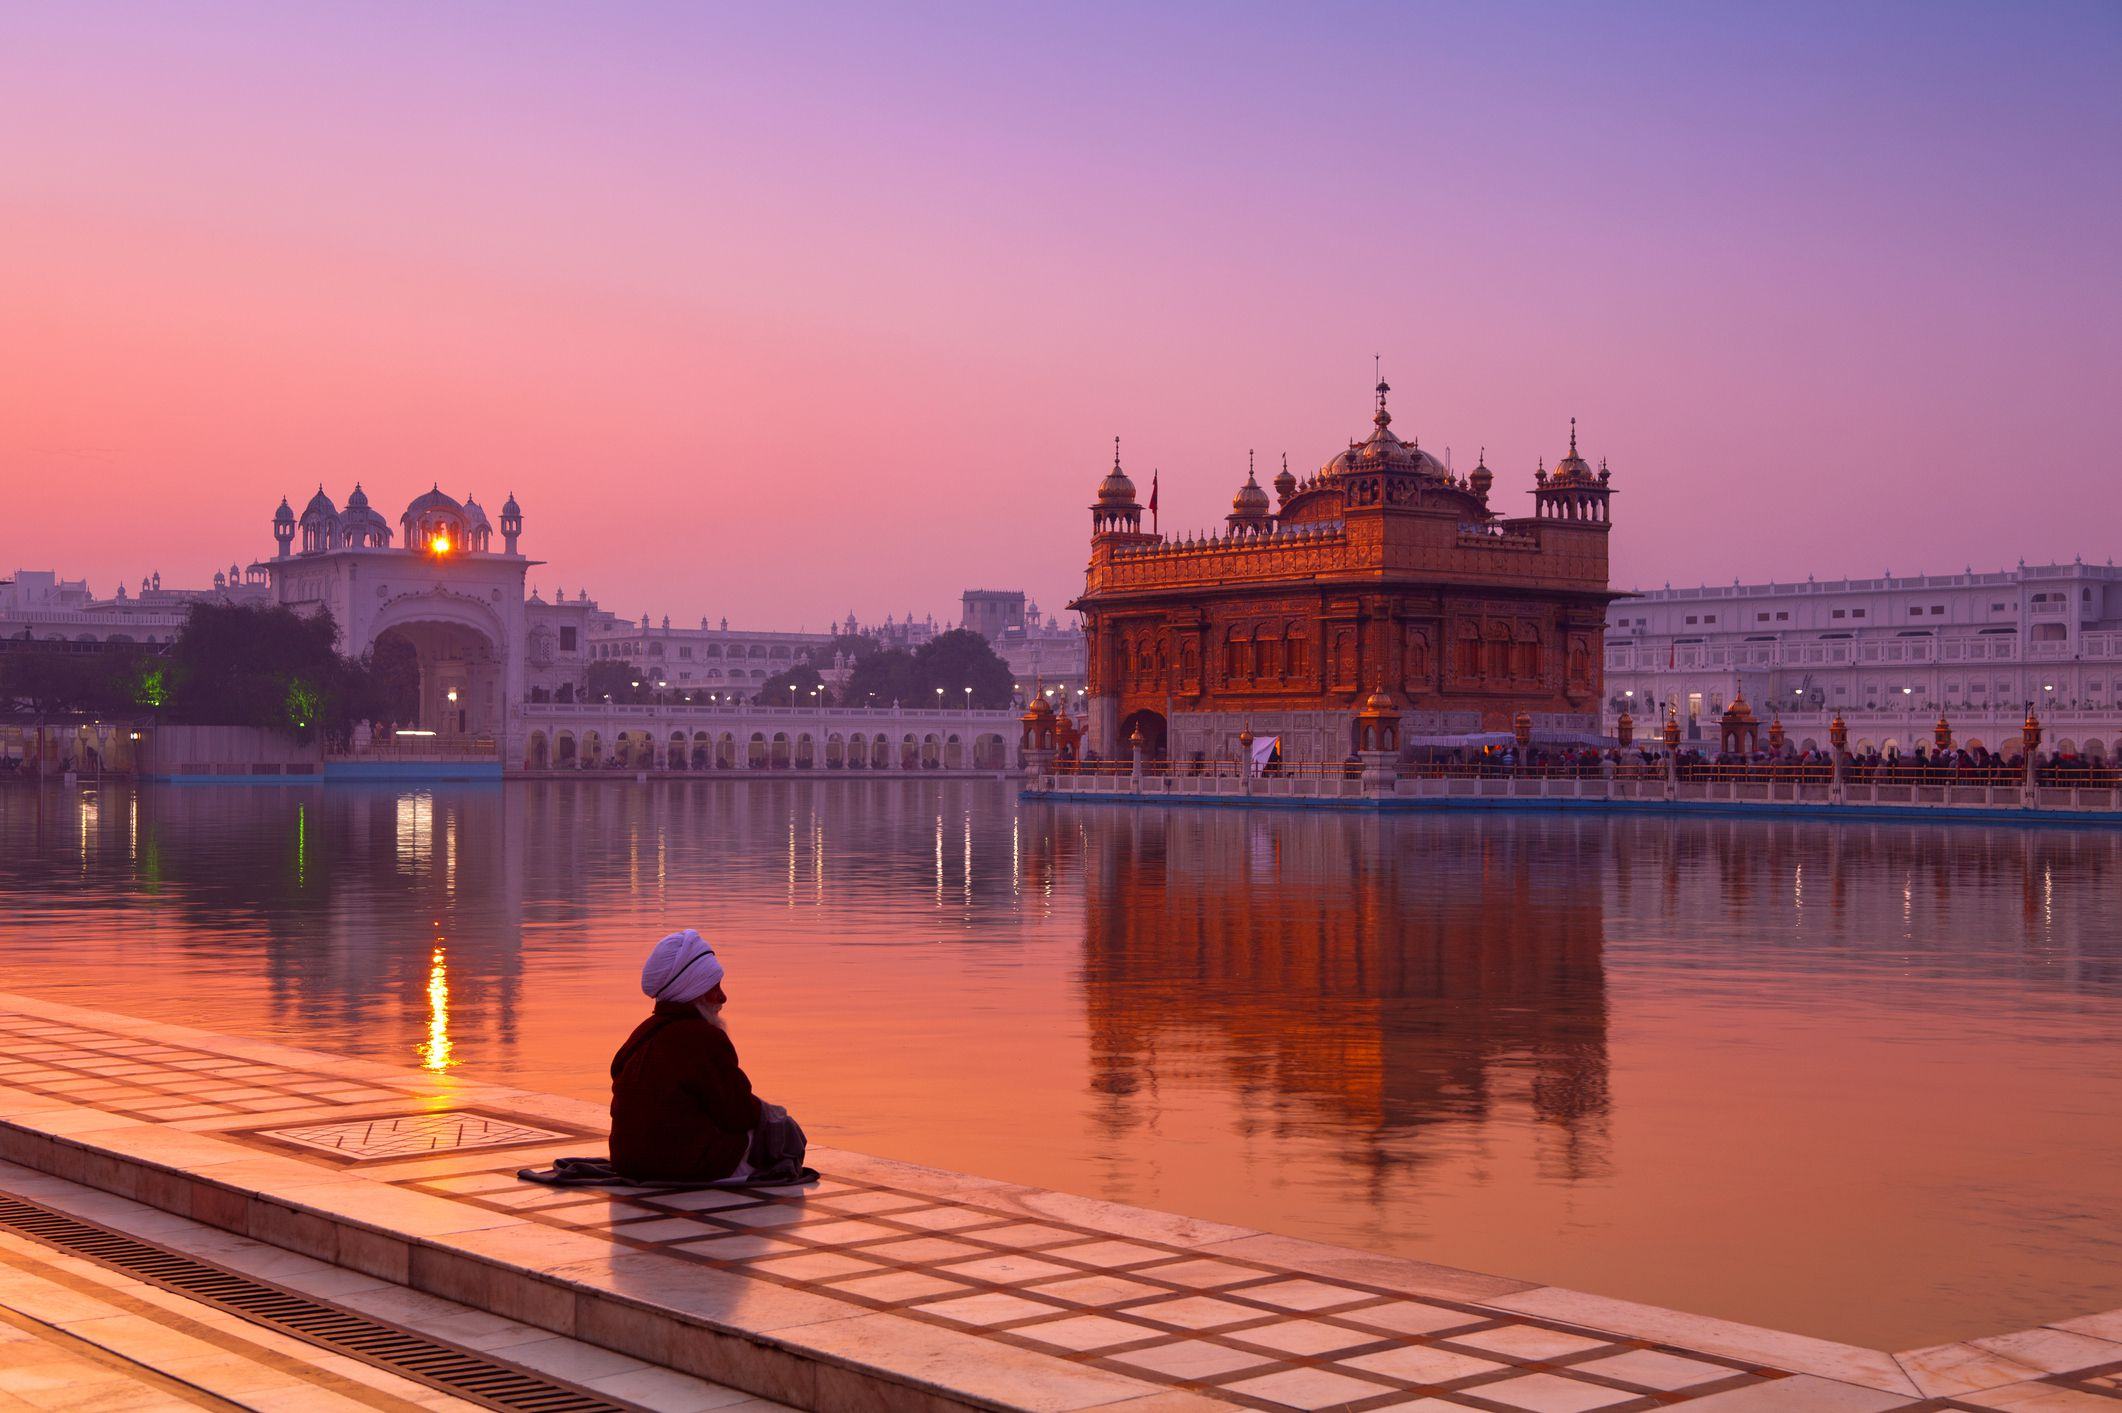 Indias Golden Temple in Amritsar Travel Guide